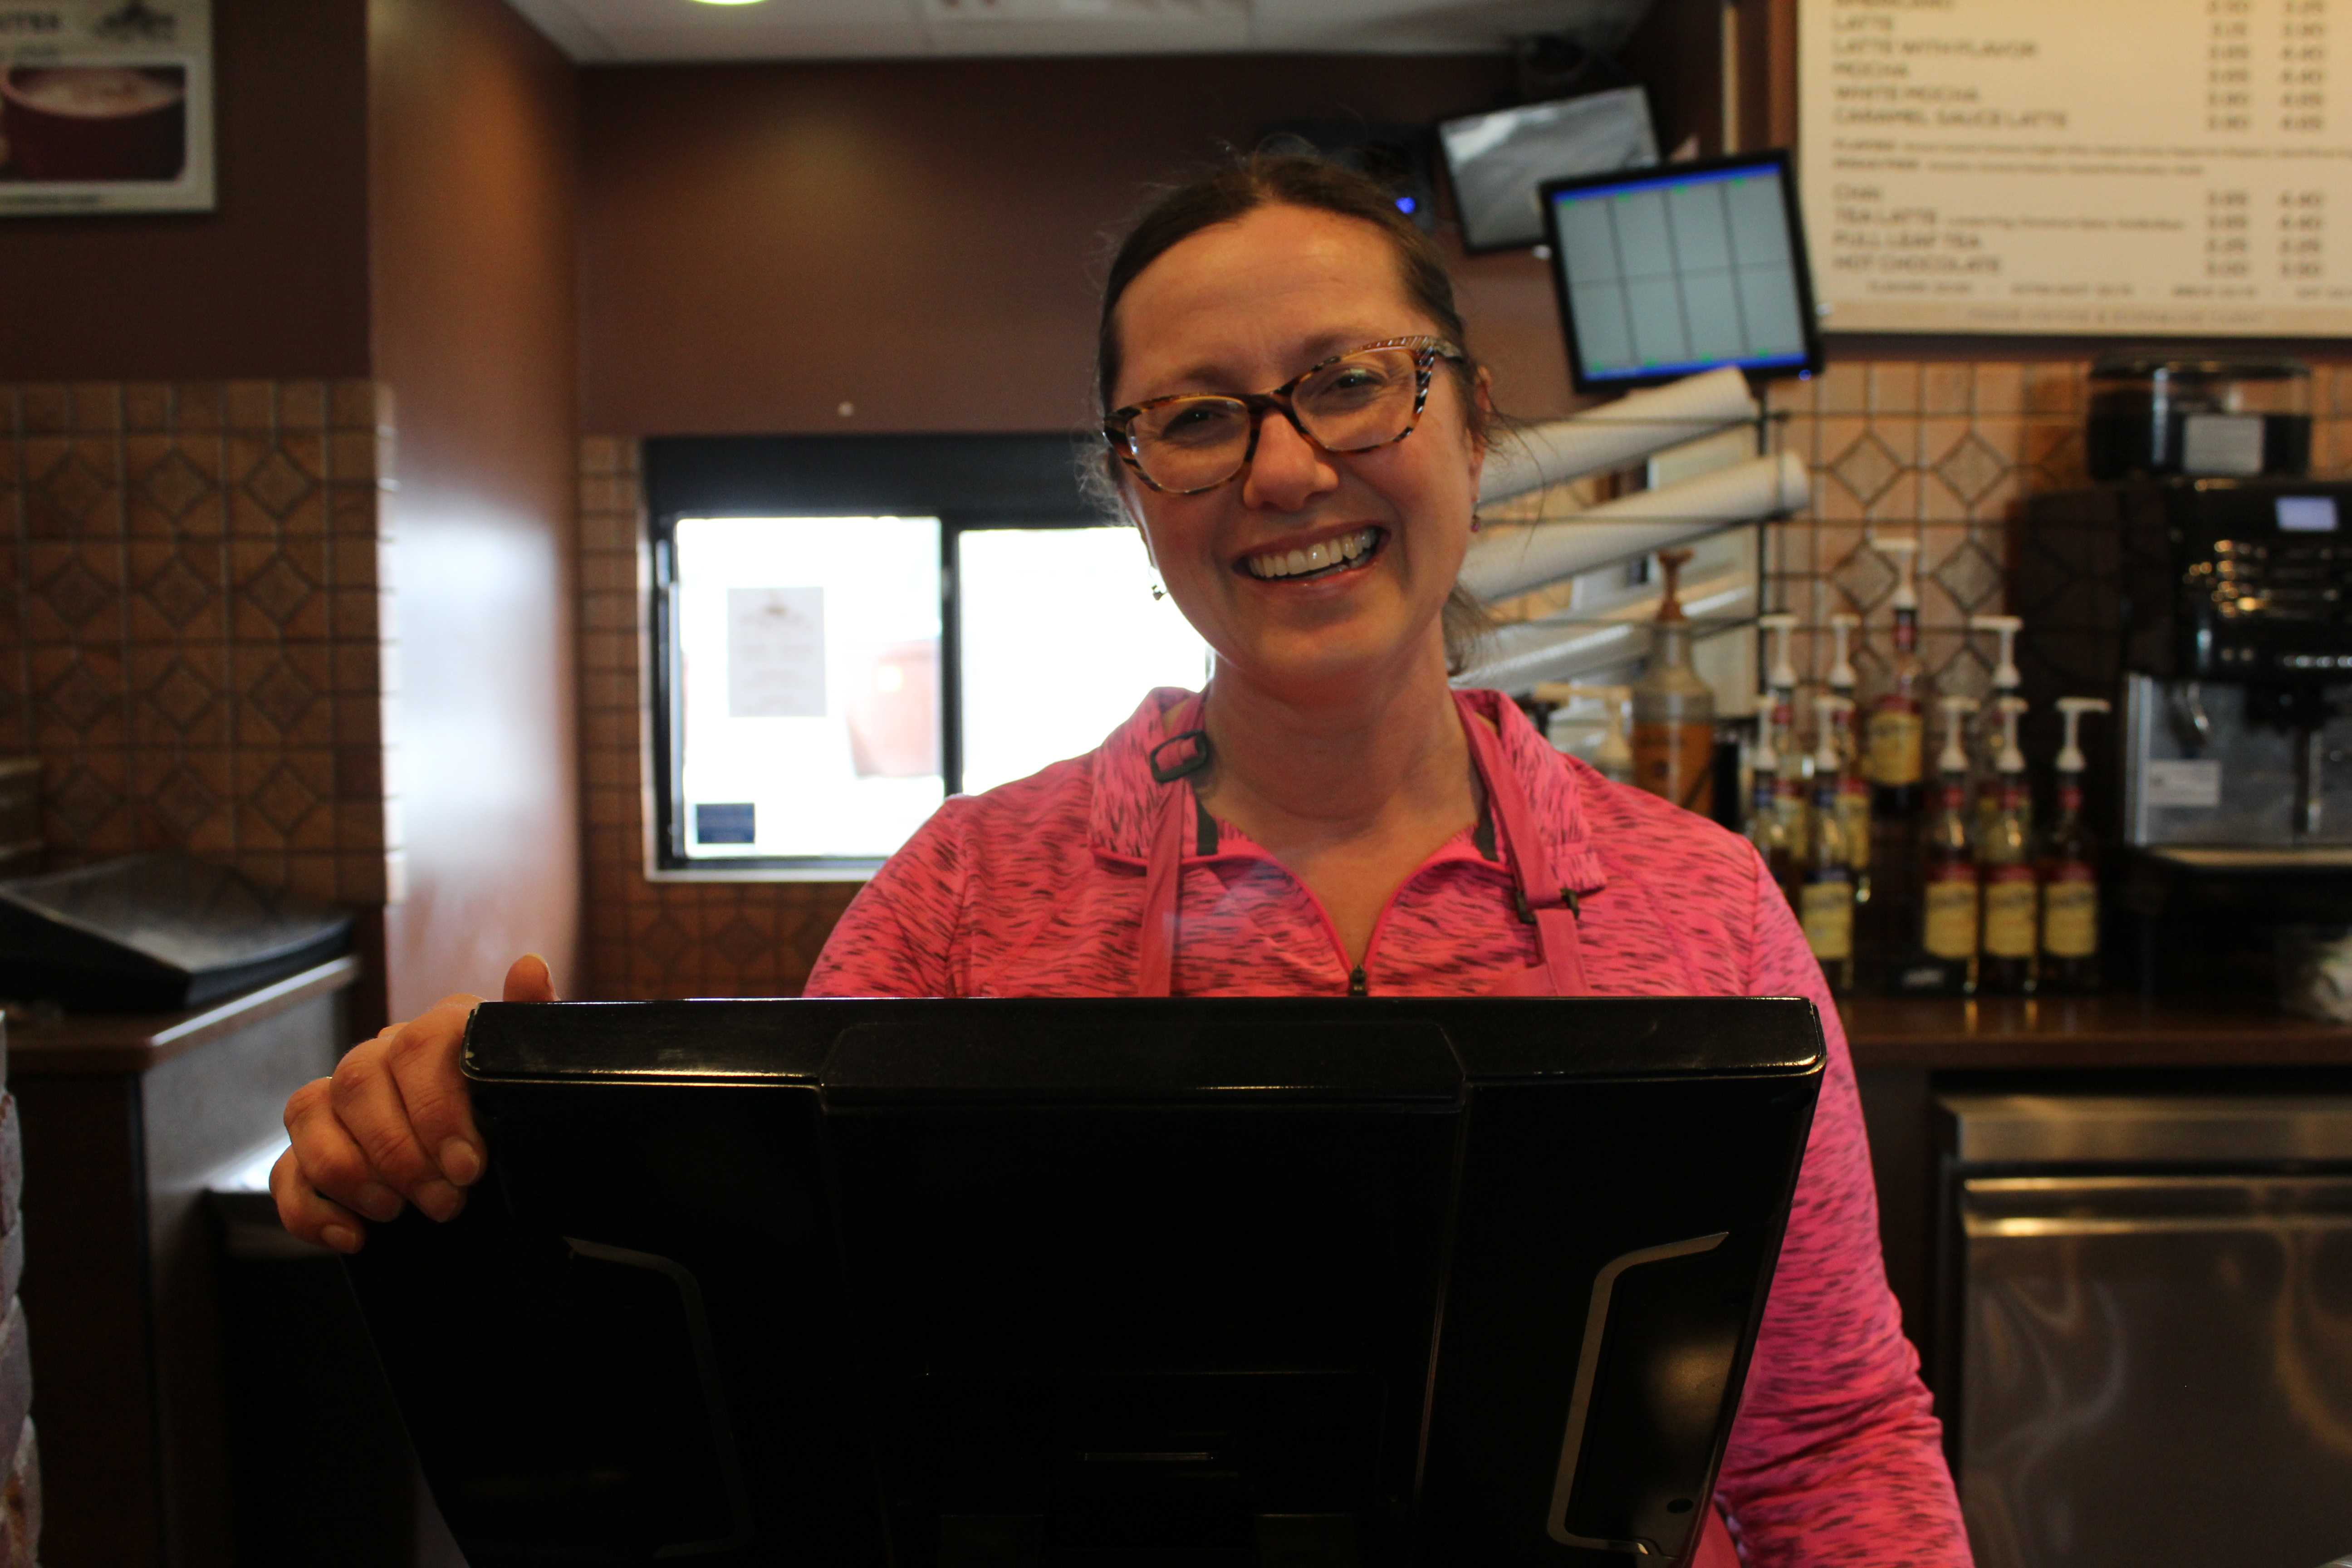 MIRANDA SAMPSON Donna Behrend, owner of Choco Latte, serves customers March 20. Choco Latte is located on the south side of Sixth Street next to Game Stop and Qdoba.